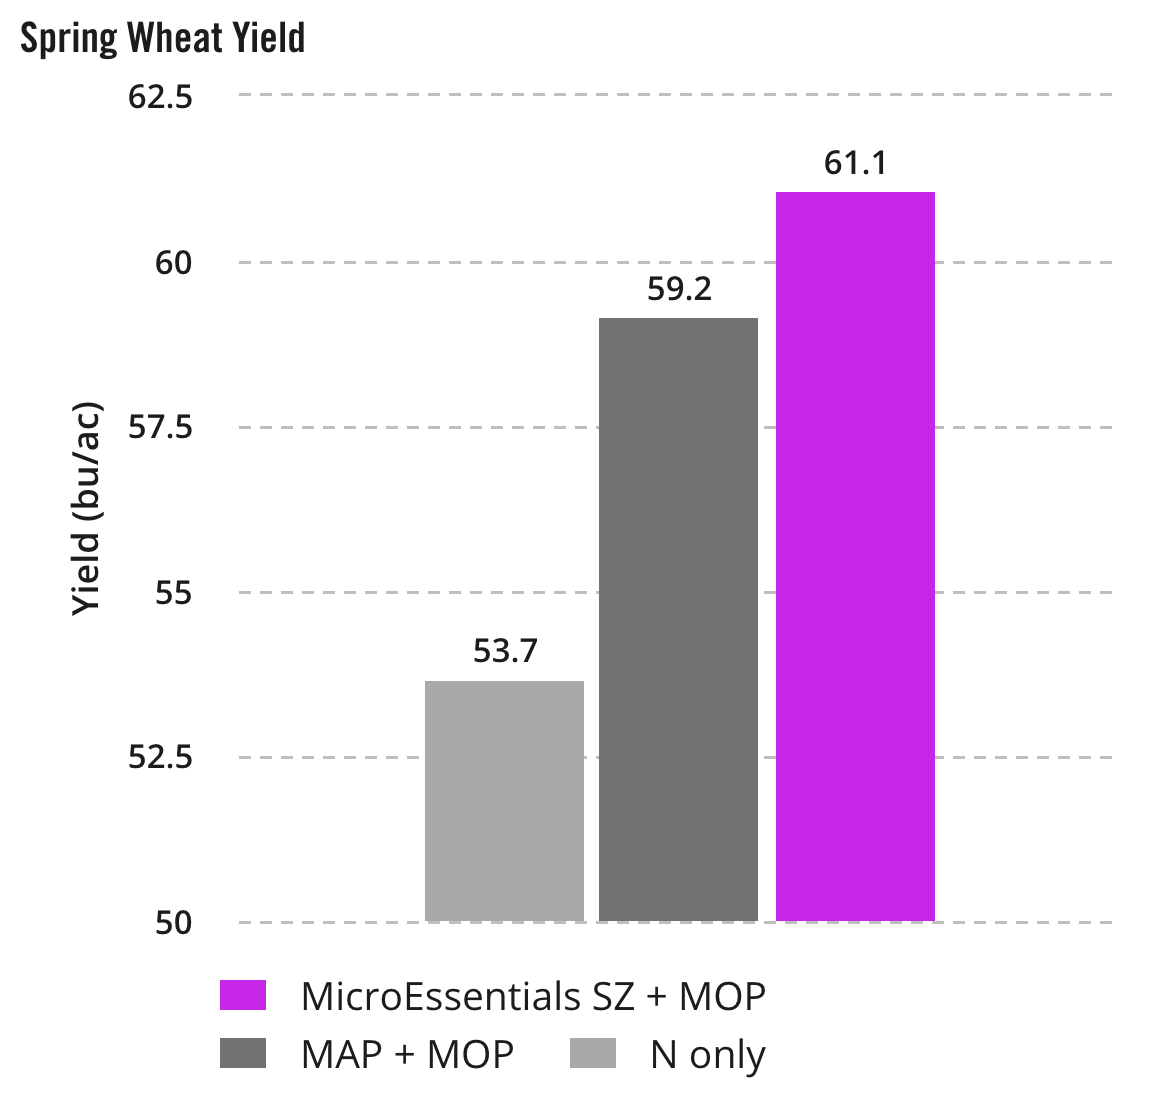 Spring Wheat Yield_MicroEssentials SZ + MOP